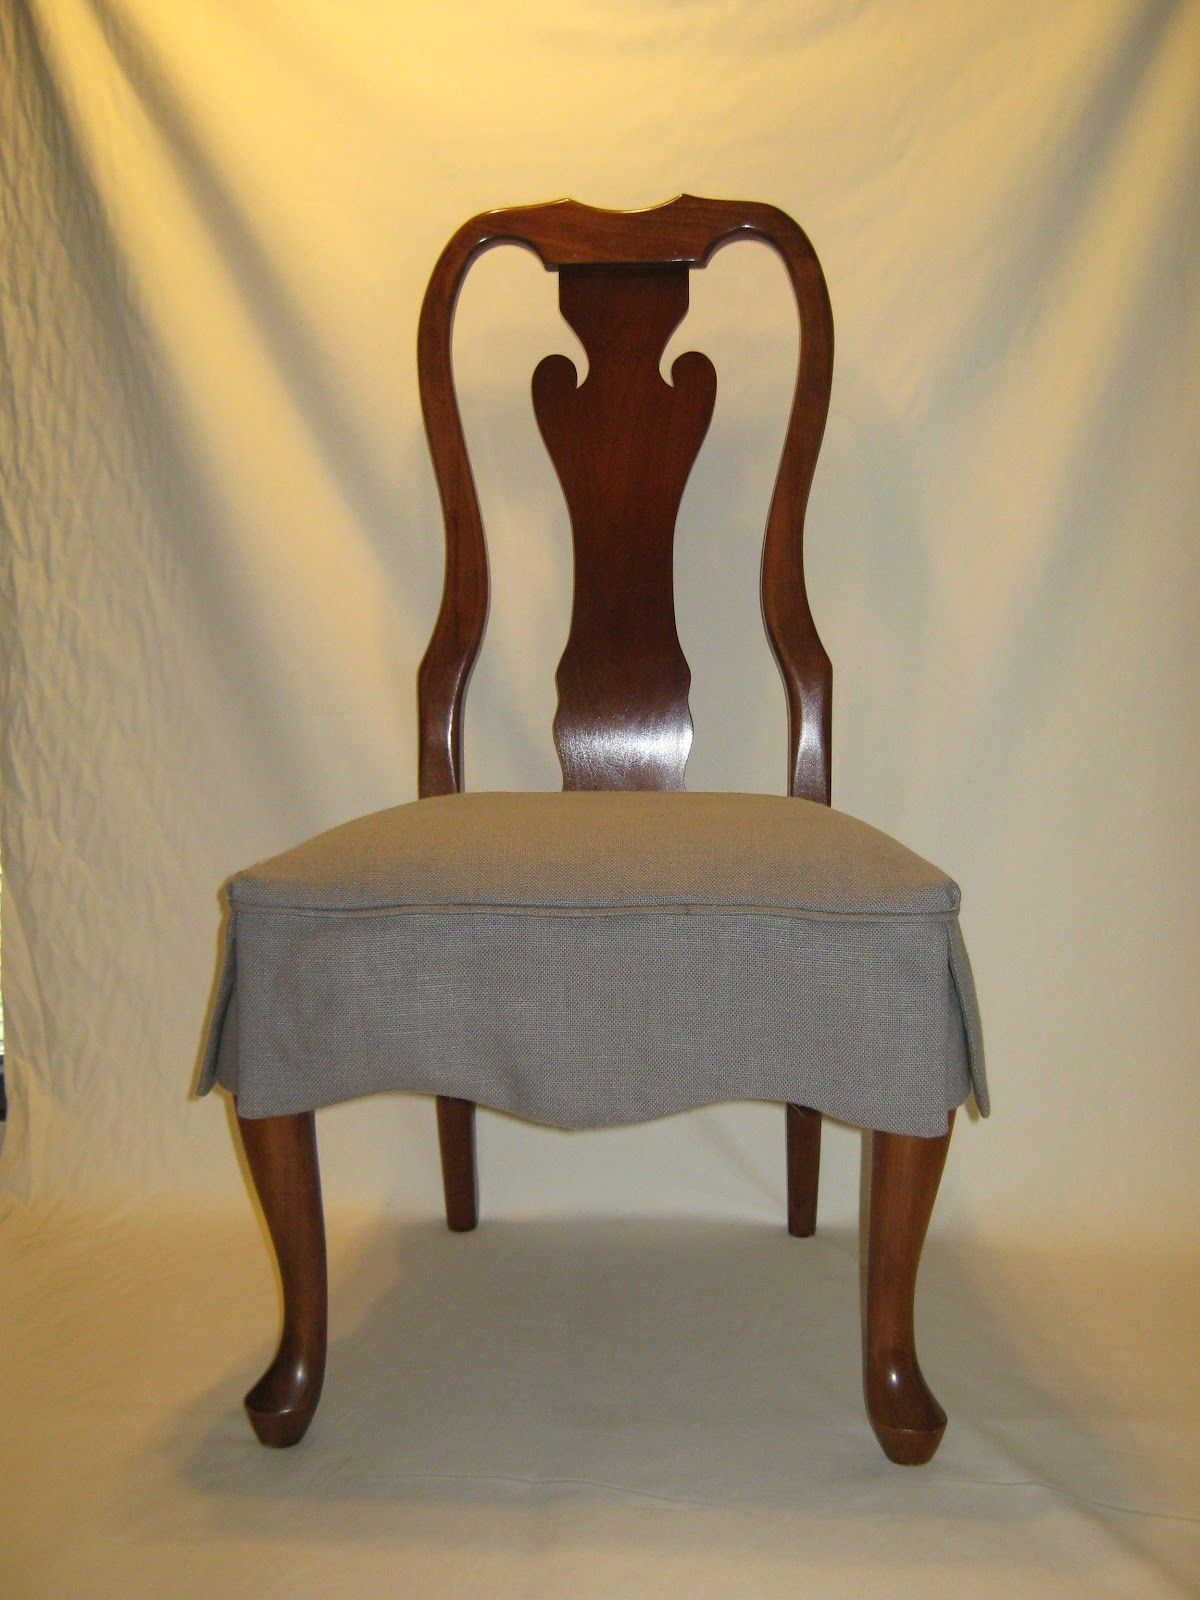 Custom Dining Chair Seat Covers   http://images11.com   Pinterest ...